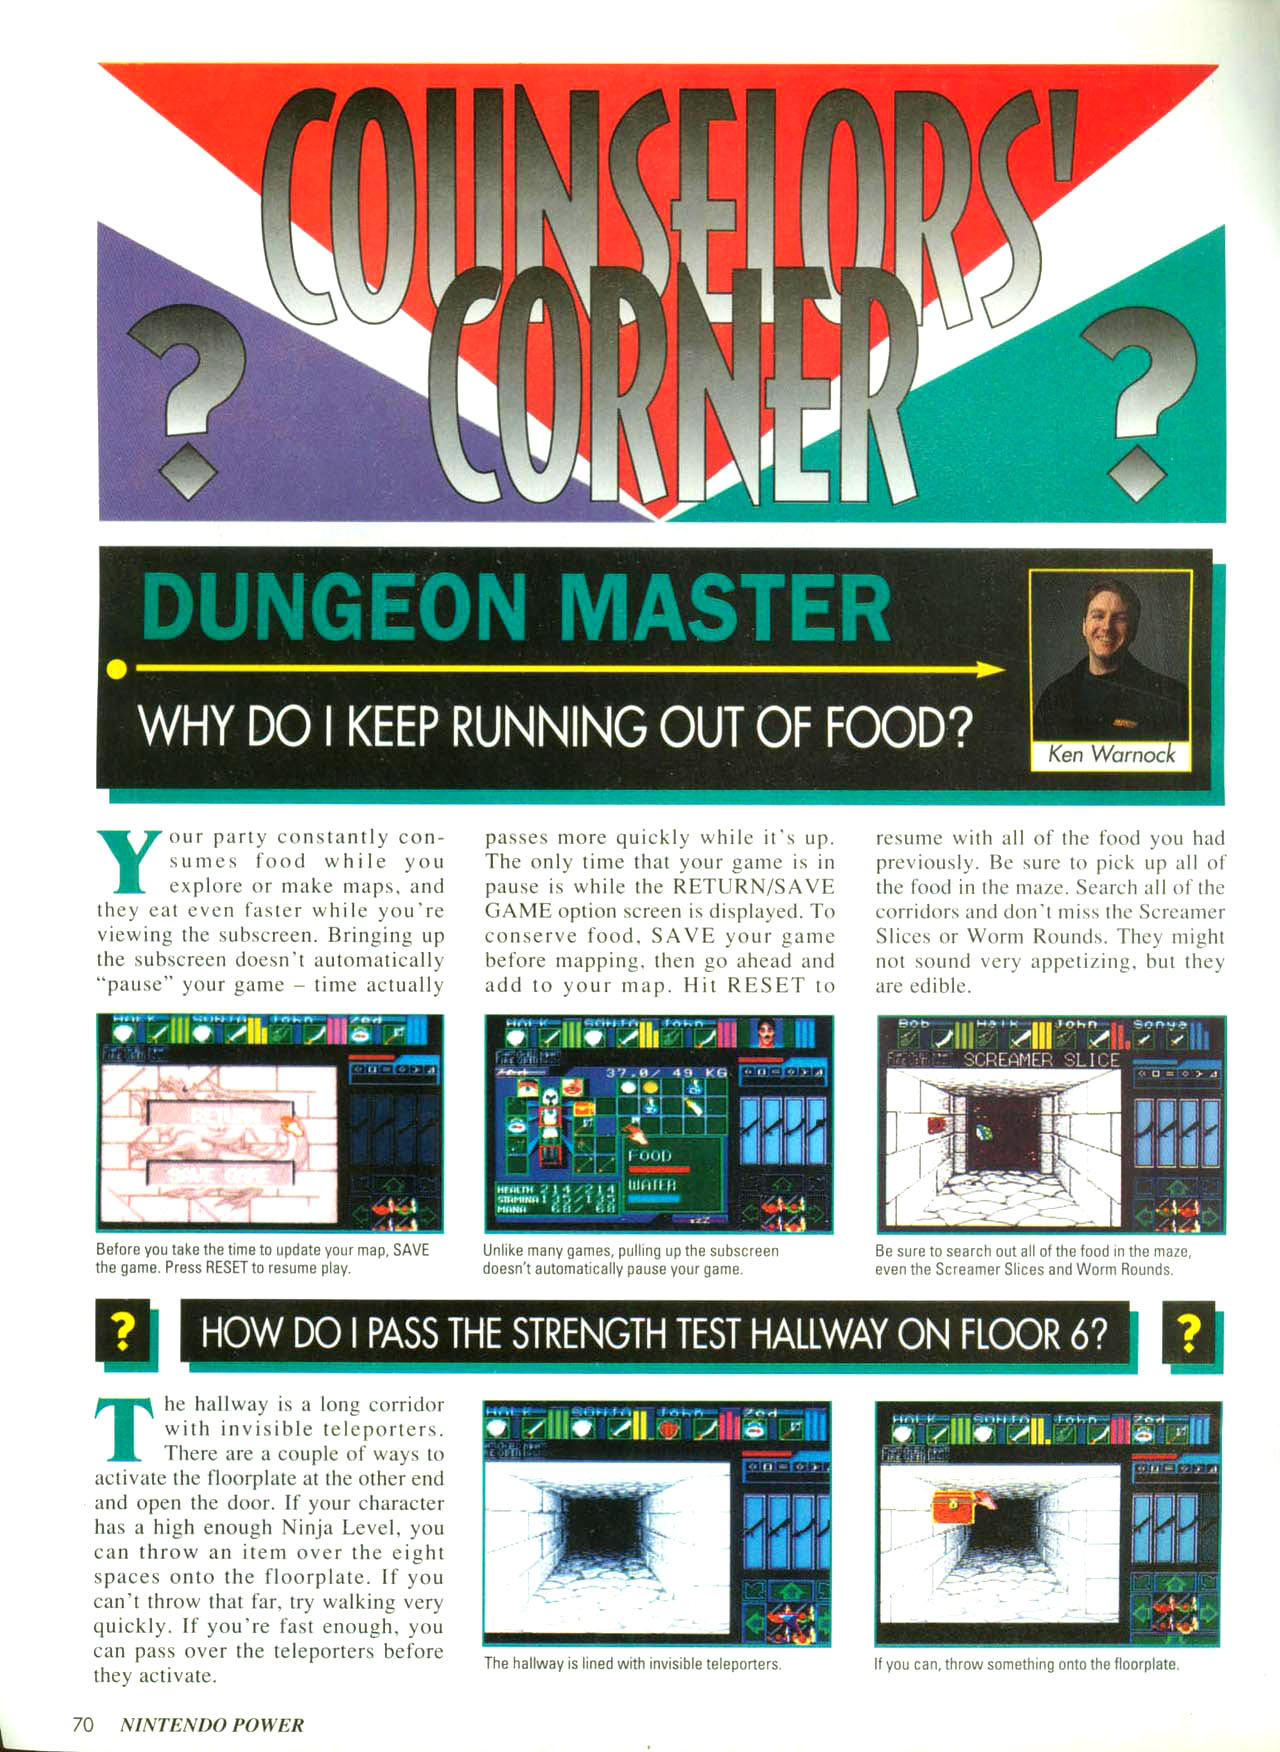 Dungeon Master for Super NES Hints published in American magazine 'Nintendo Power', Issue #57 February 1994, Page 70